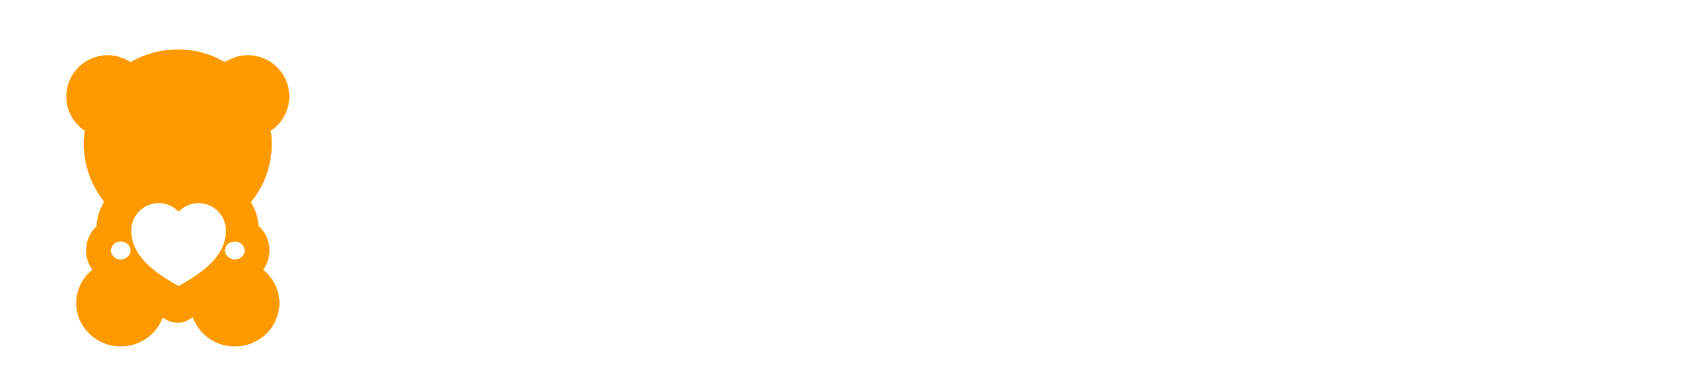 MyNannyBook - Blog